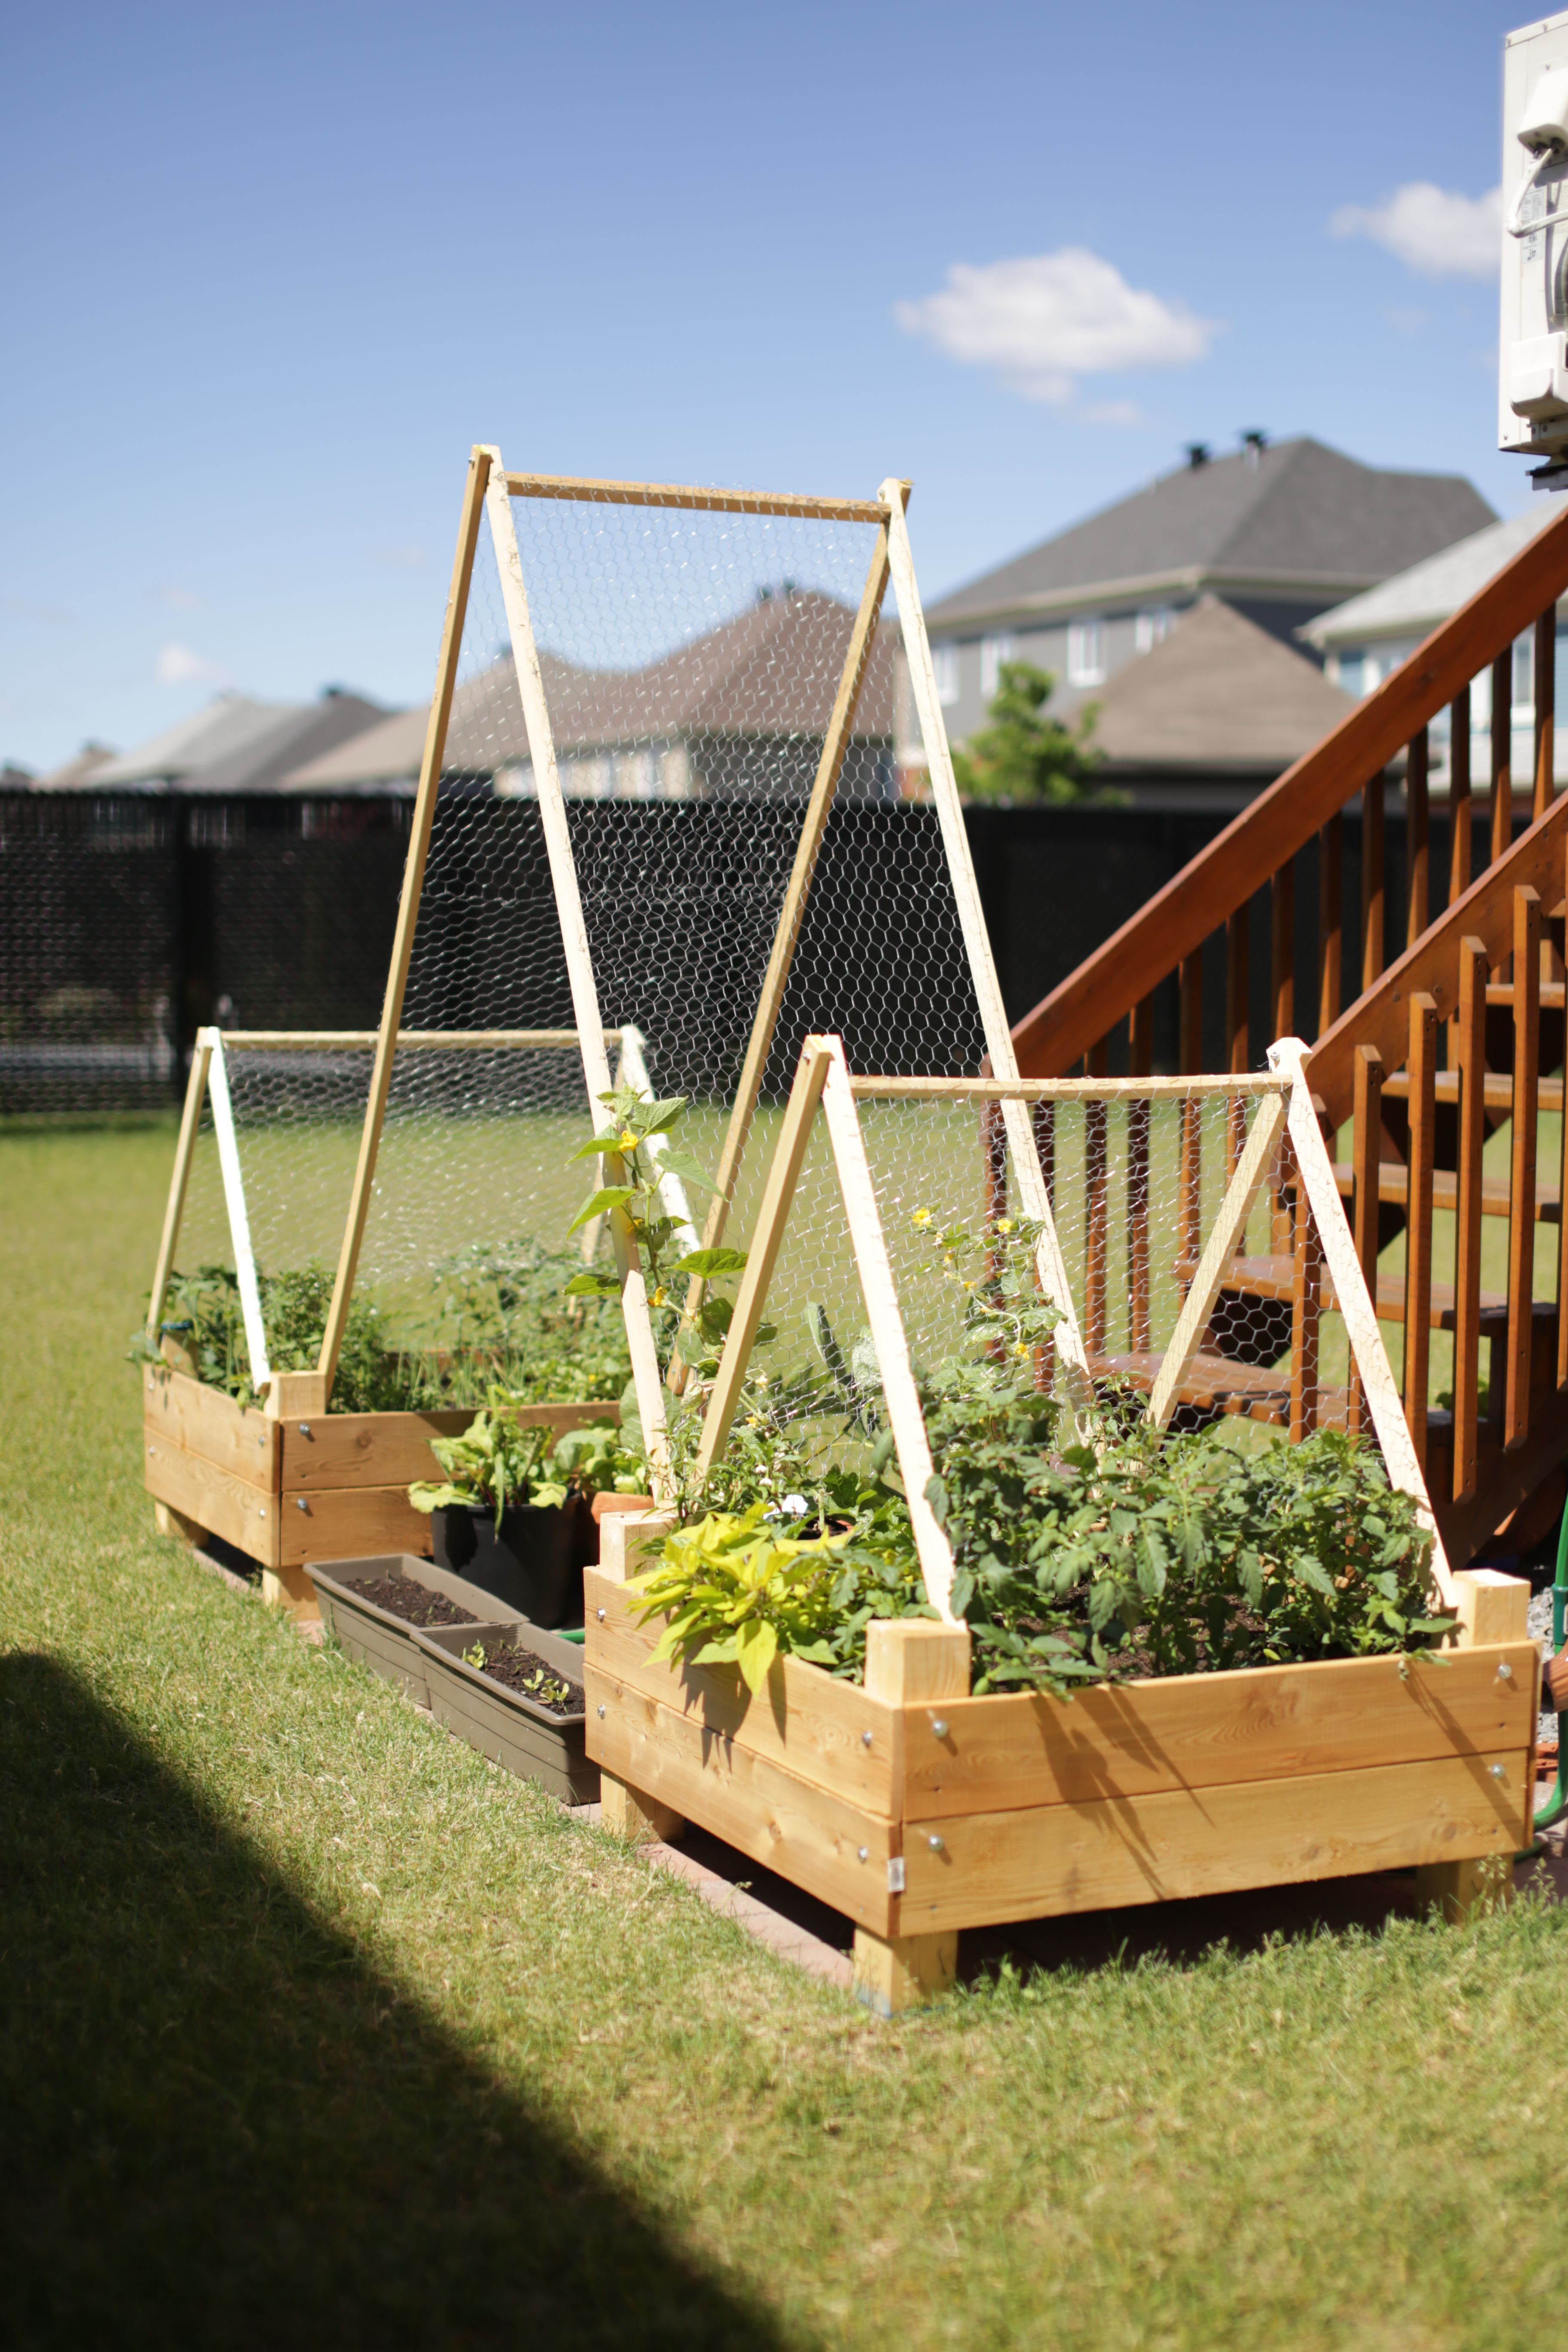 Garden Box Do It Yourself Home Projects From Ana White